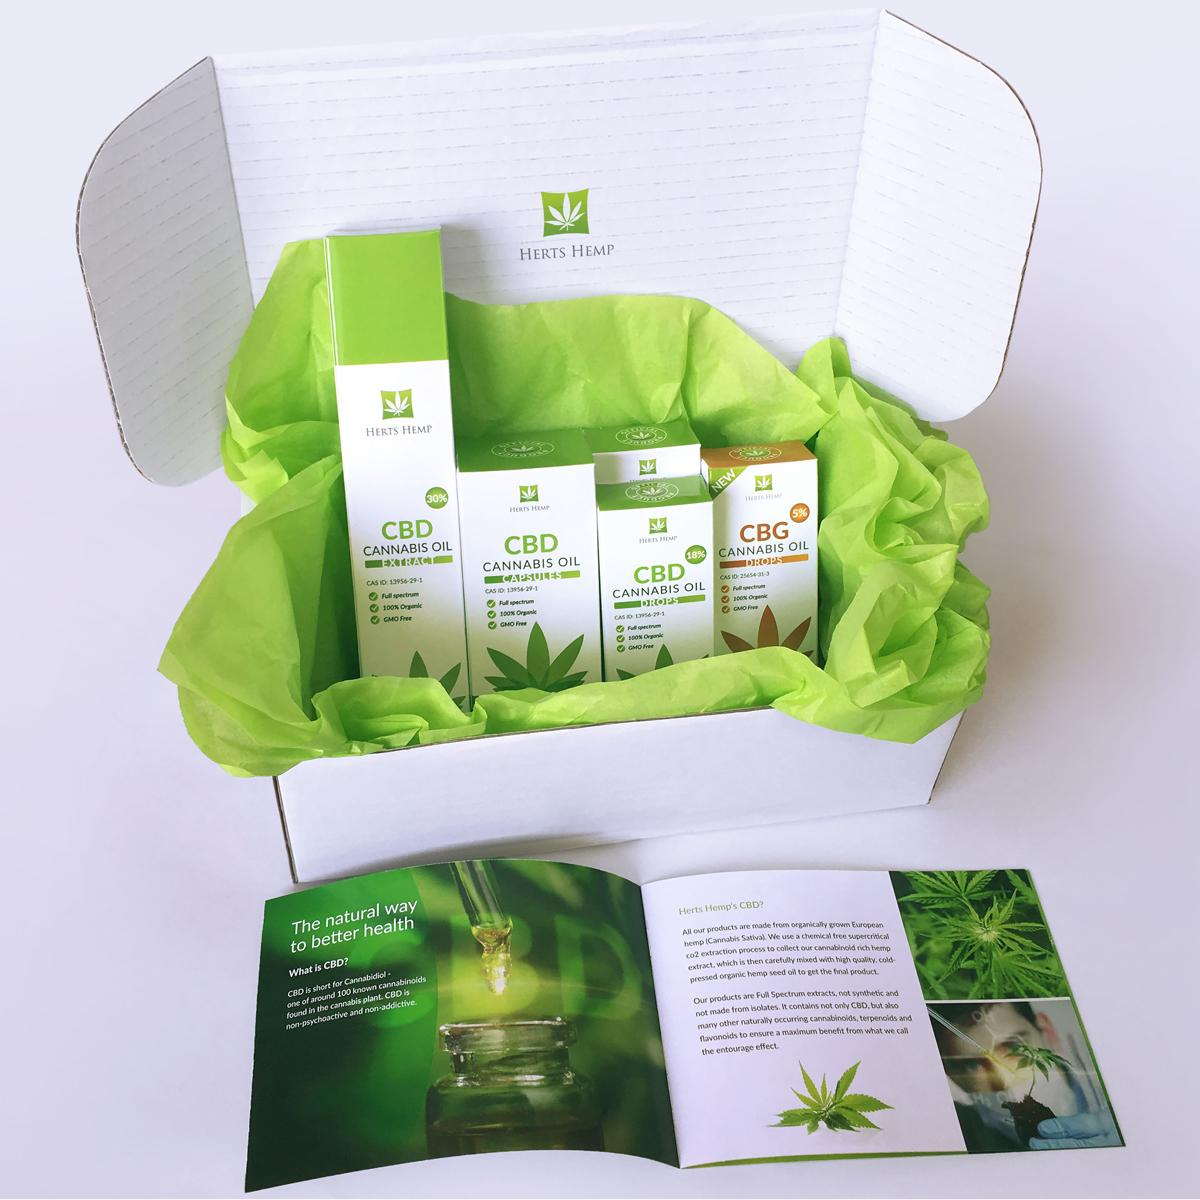 Herts Hemp | CBD Oil | Delivery Parcel